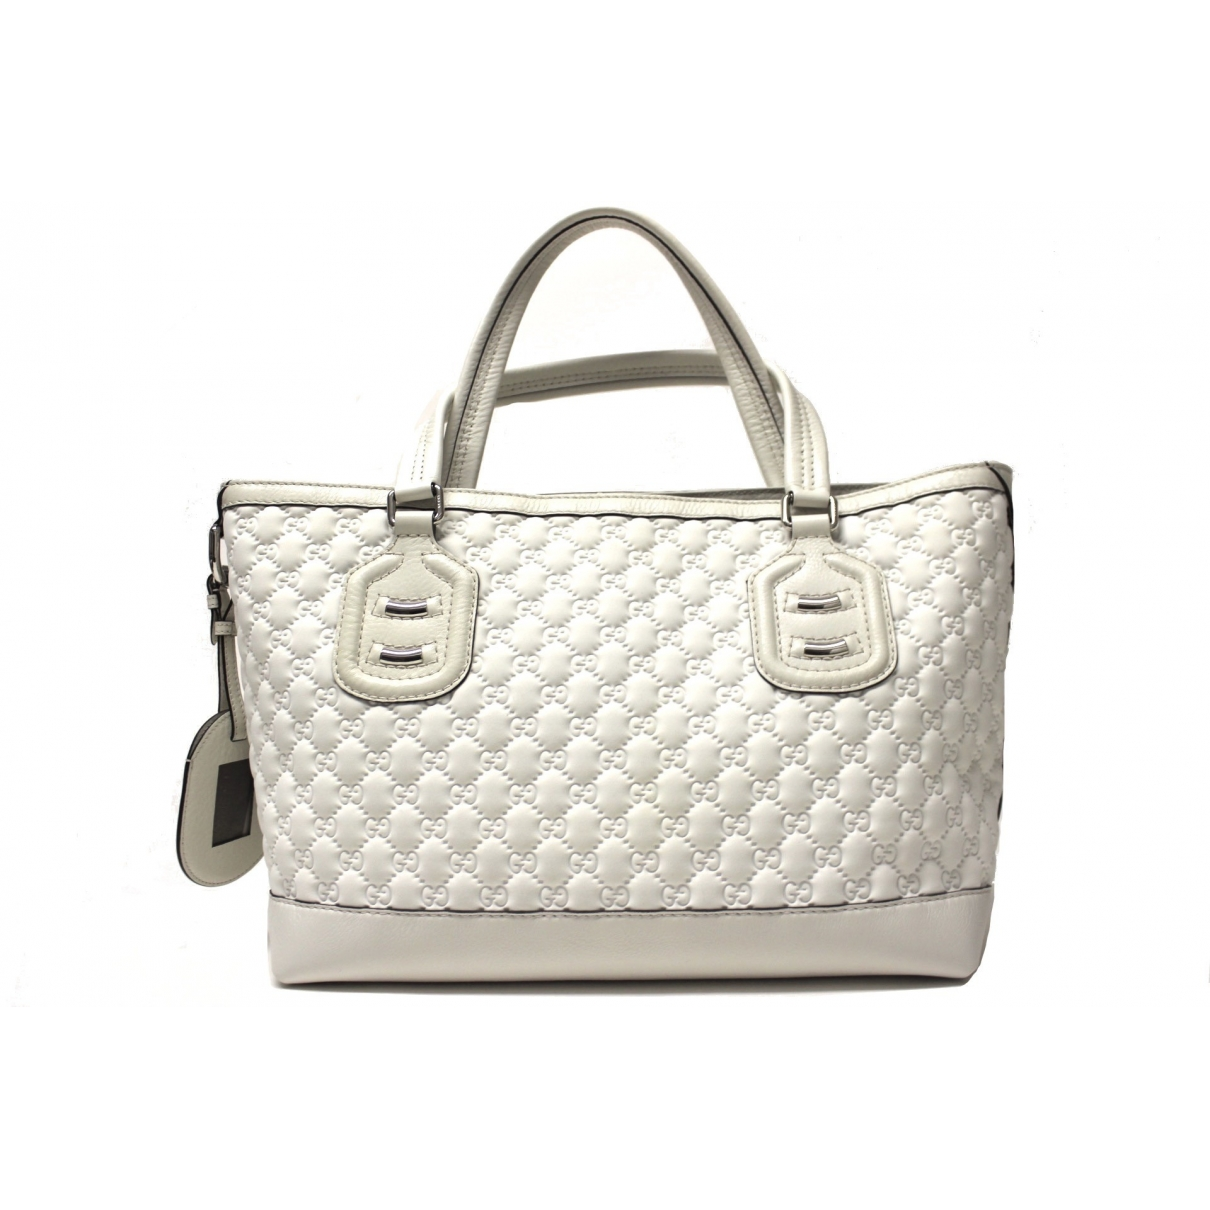 Gucci \N White handbag for Women \N